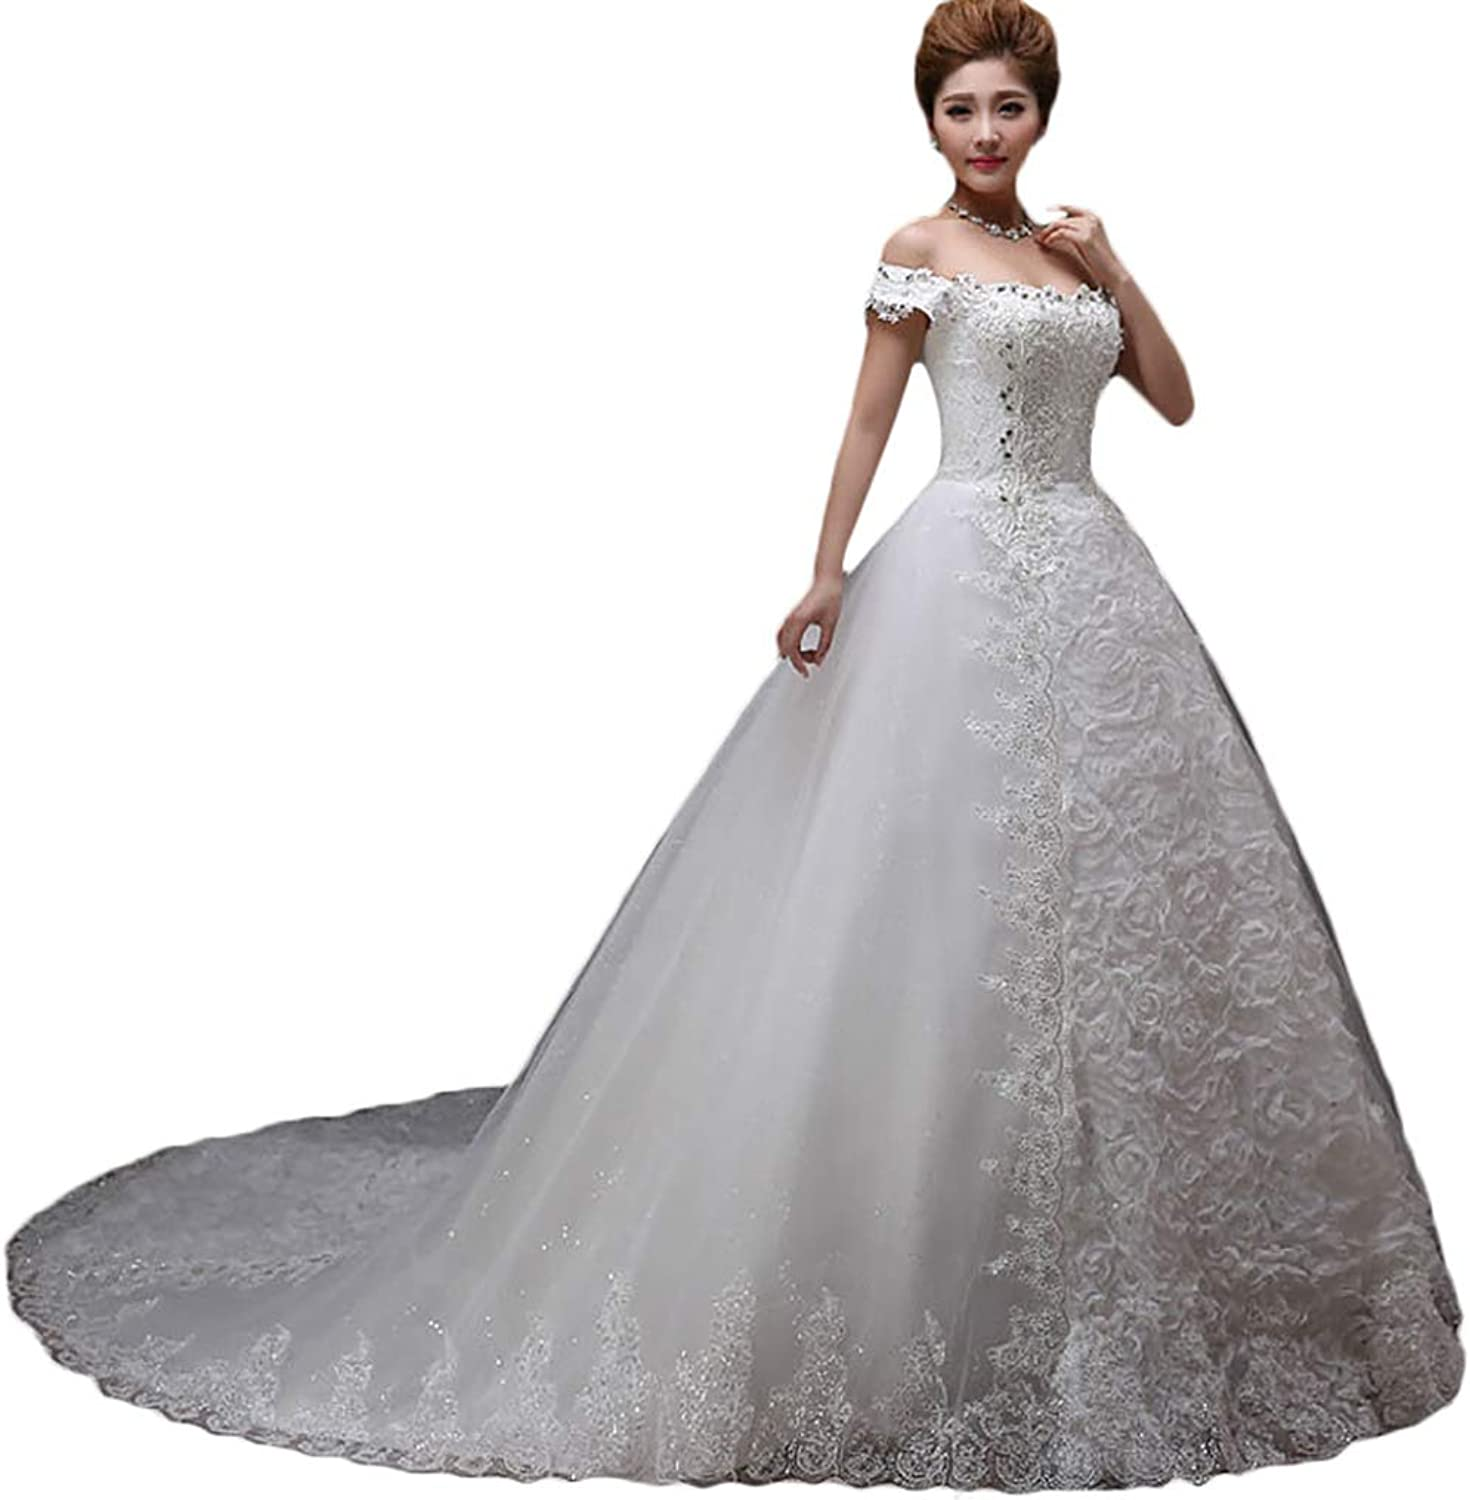 Baixia Vintage Retro Wedding Dresses Off Shoulder Applique Lace Ball Gown Bridal Dress